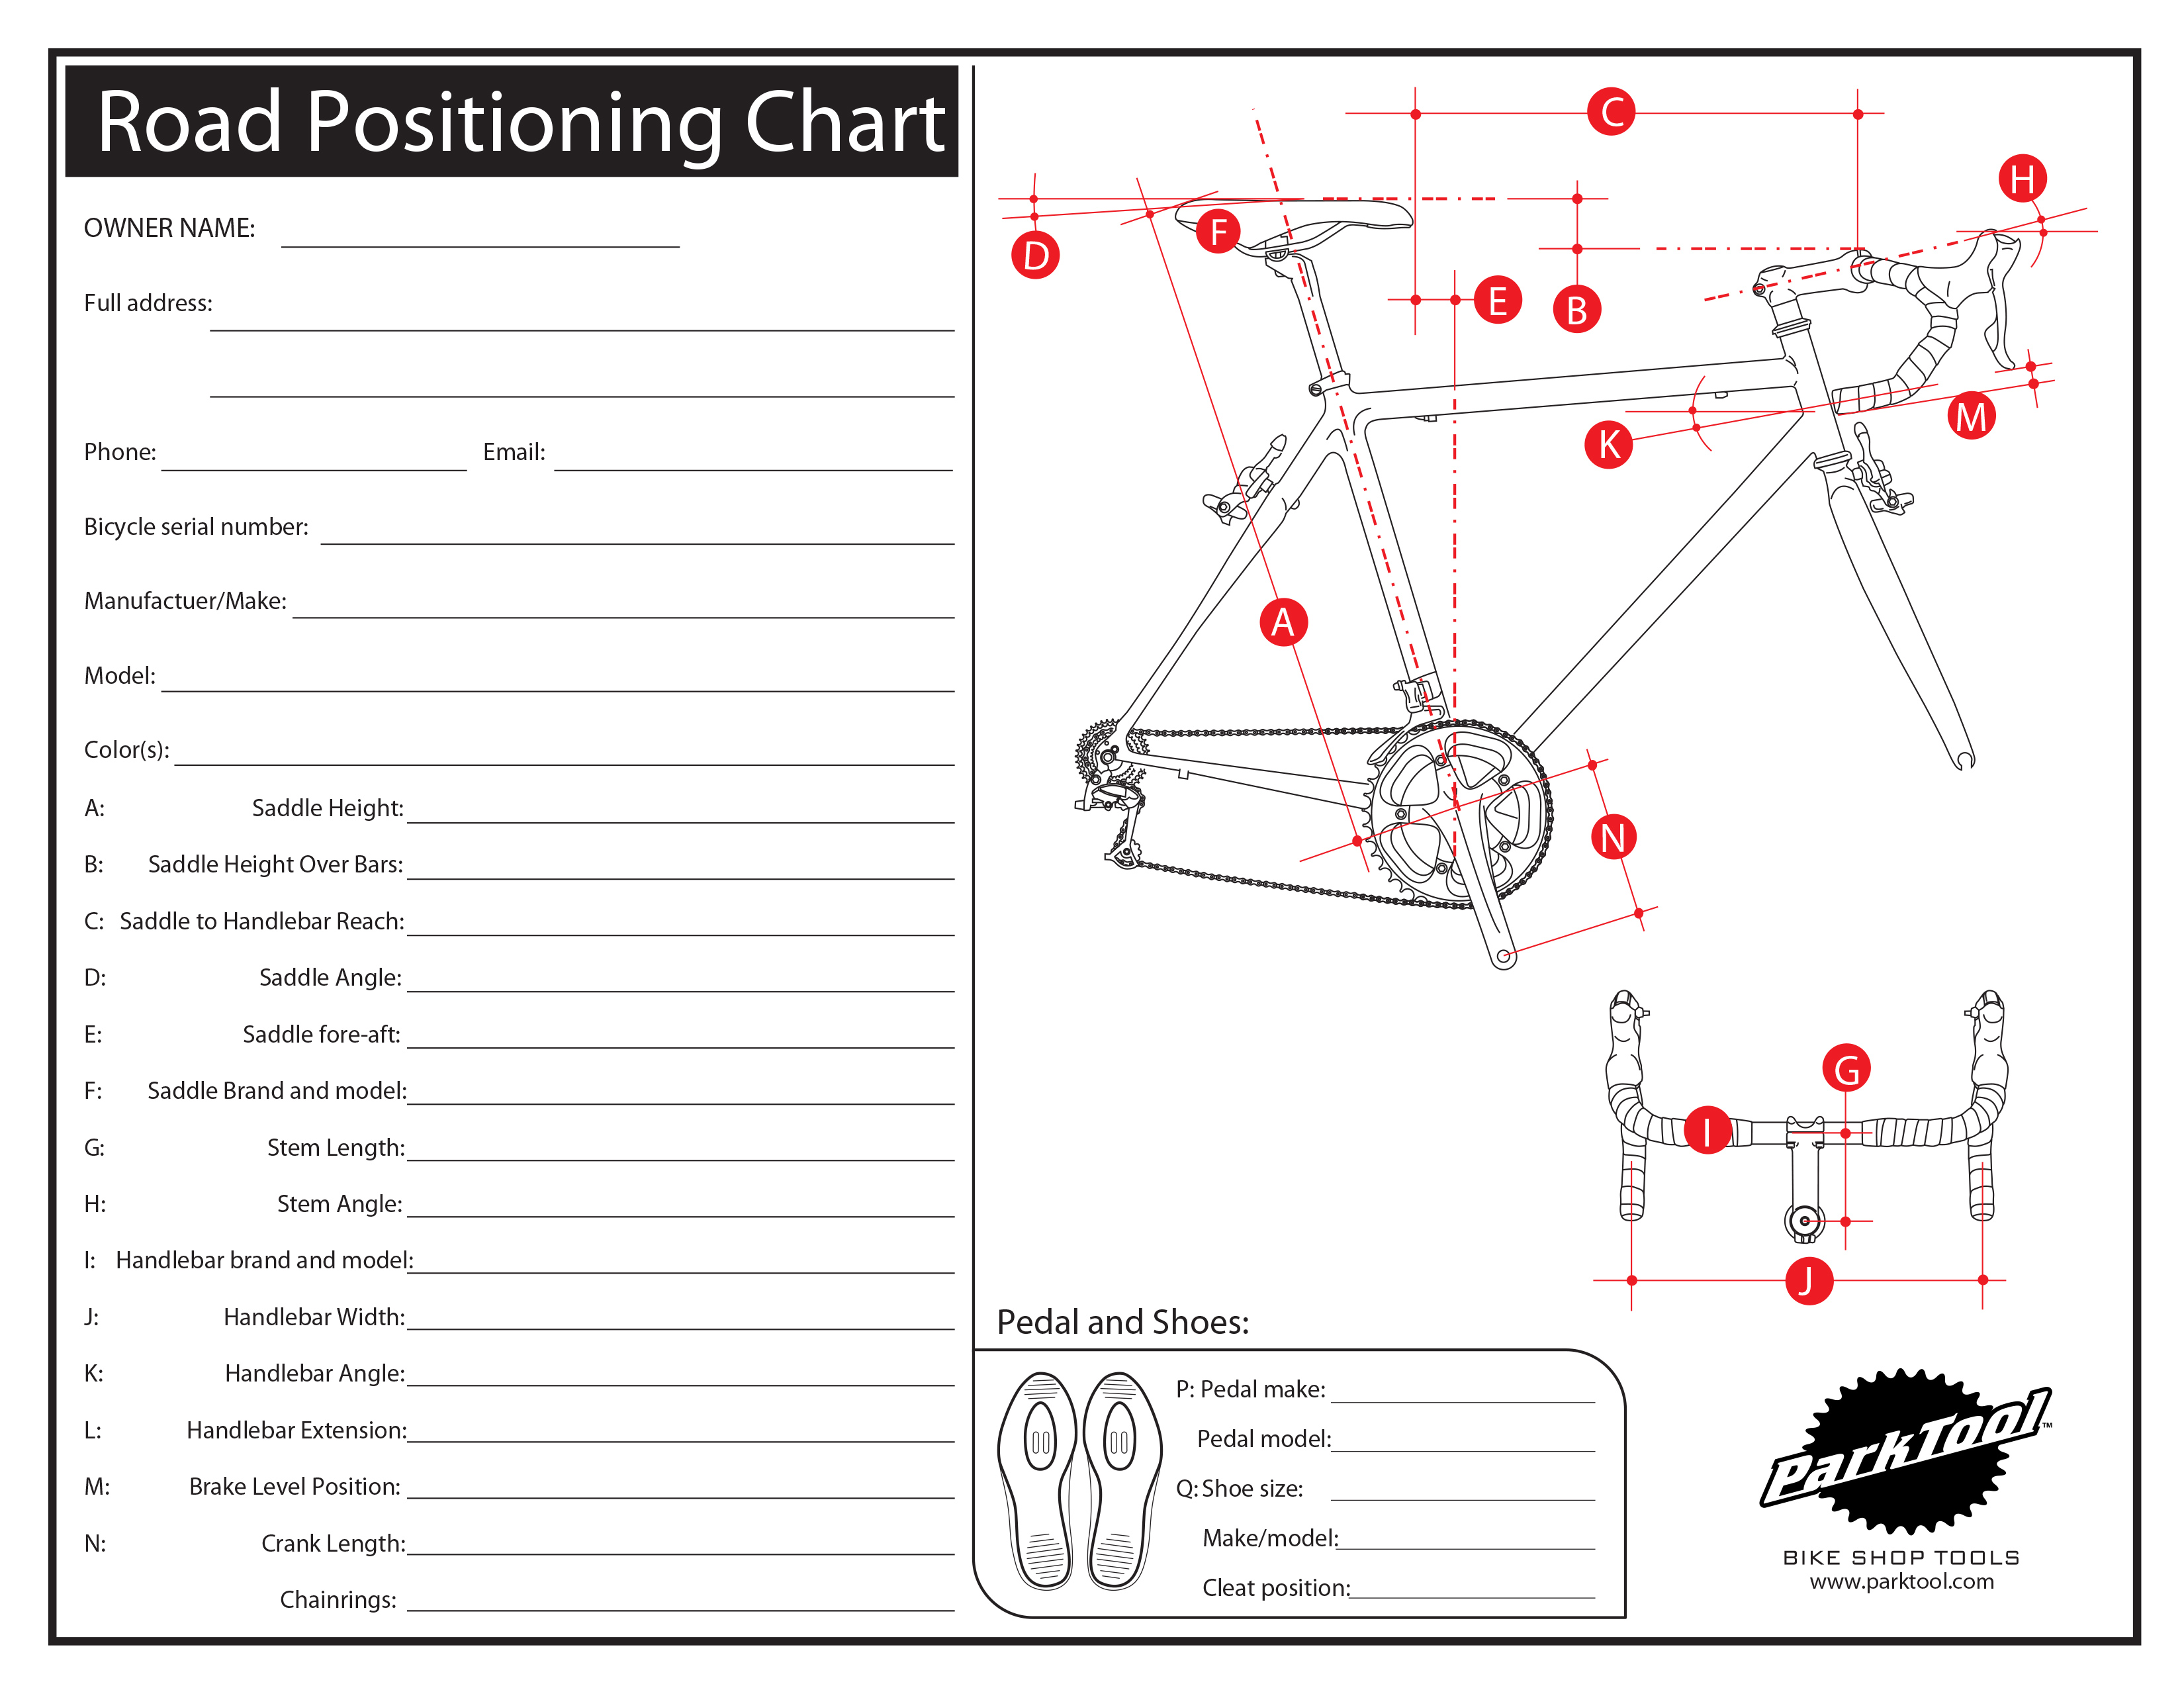 Cheerful Bike Frame Size Road Positioning Chart Park Tool Bike Frame Size Calc Common Frame Sizes Cm Standard Frame Sizes Europe dpreview Common Picture Frame Sizes